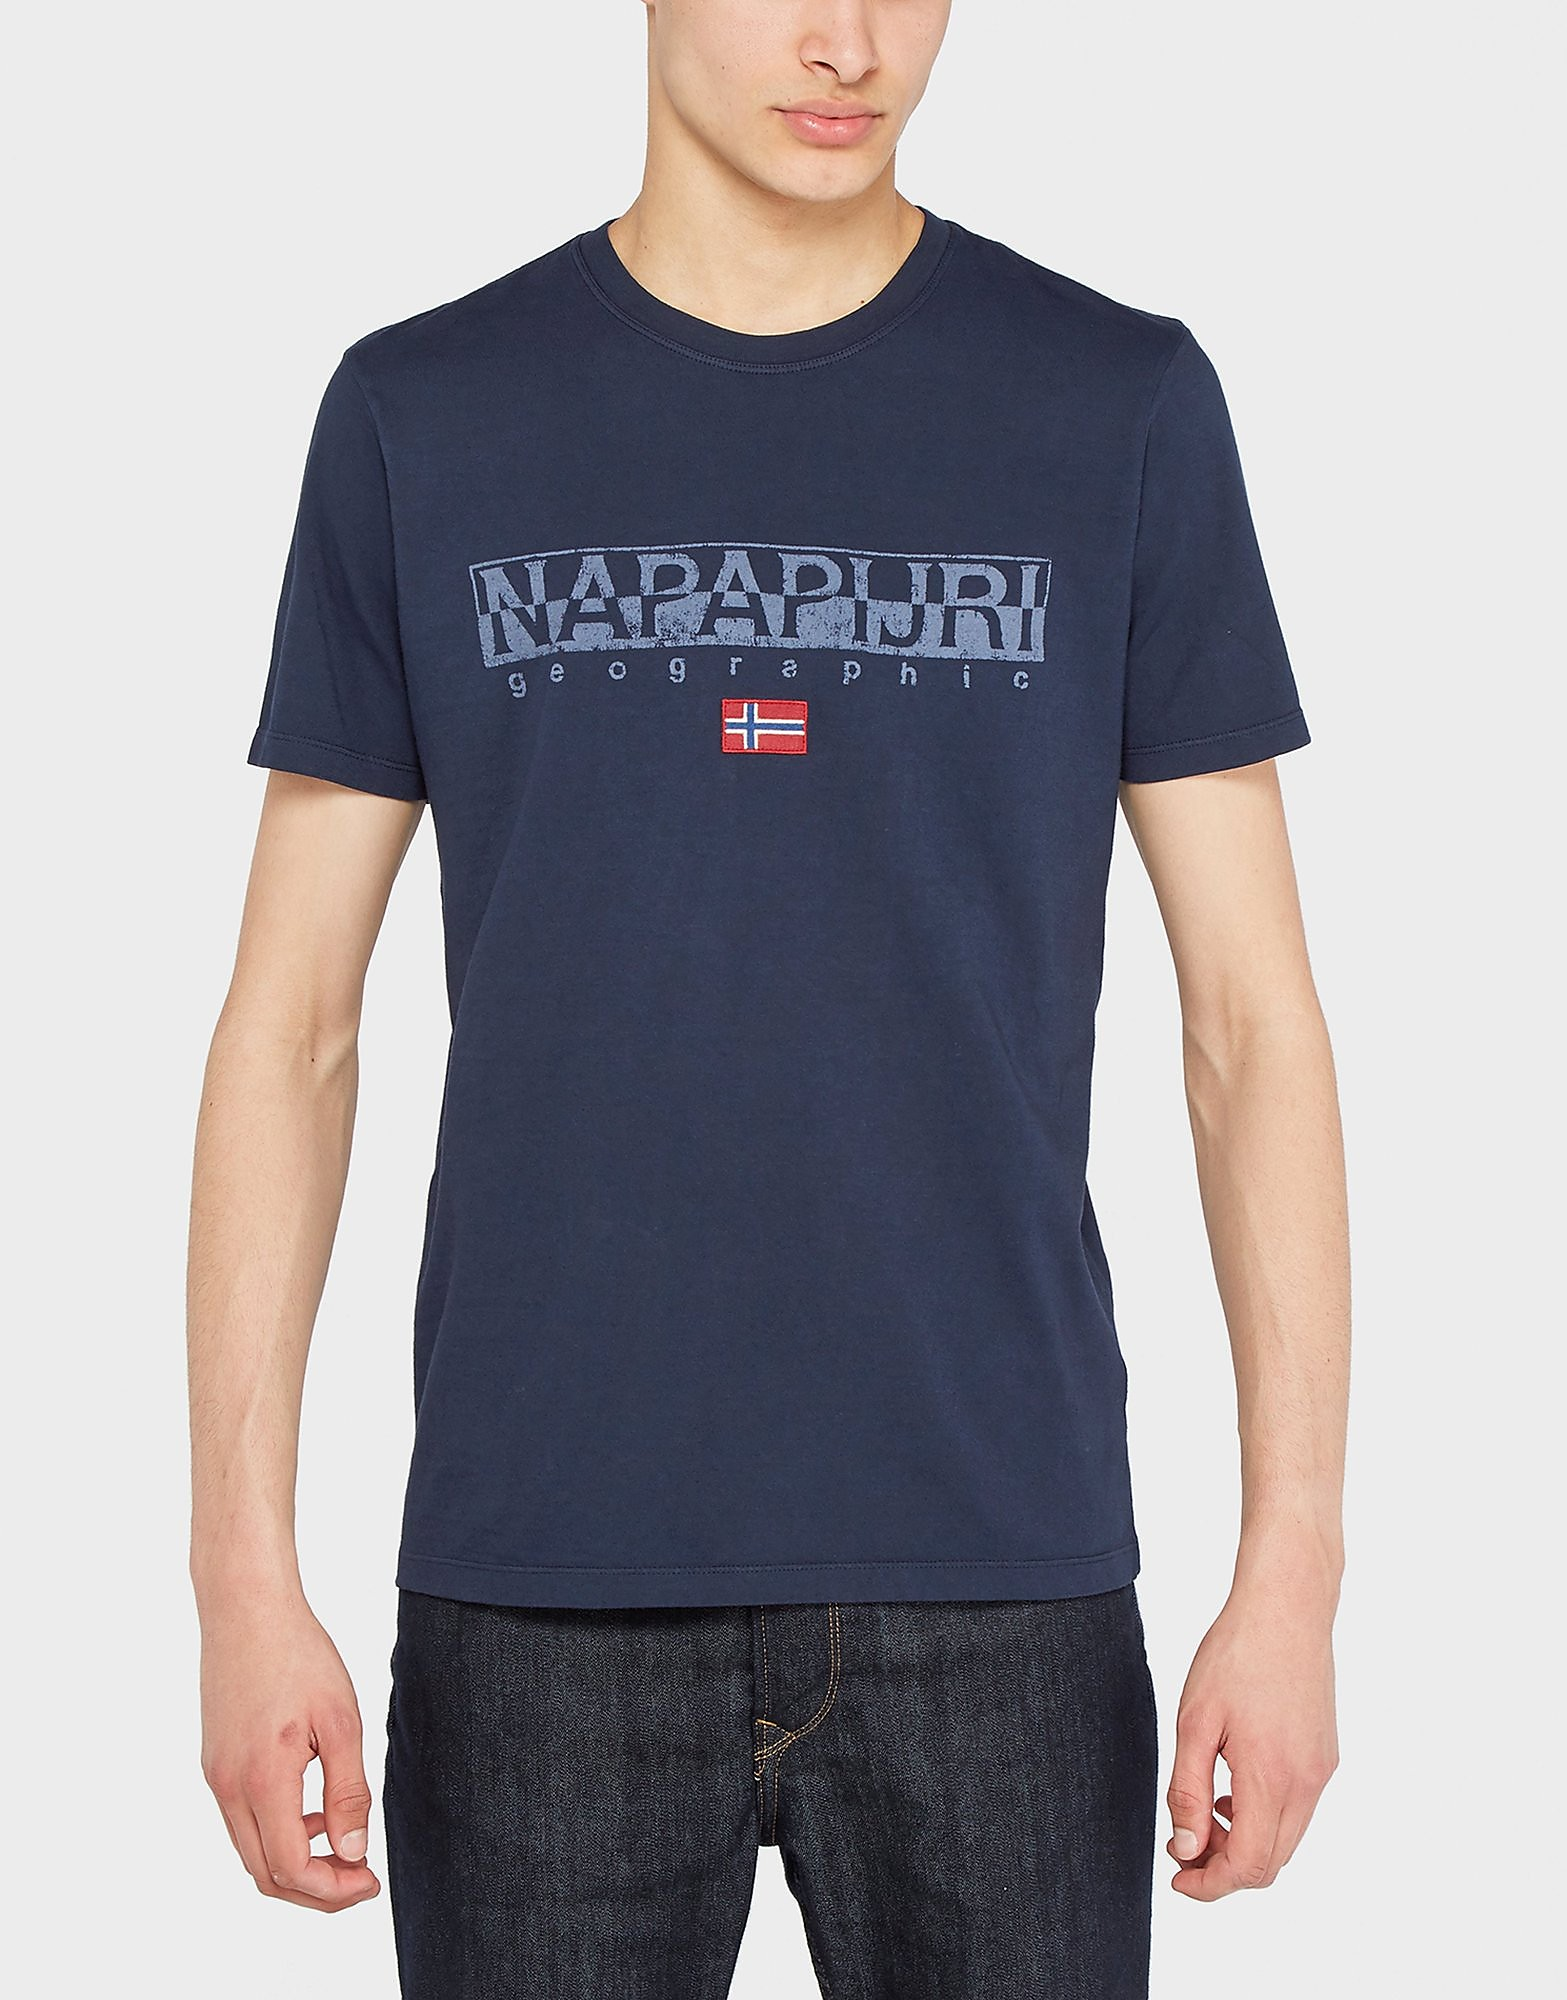 Napapijri Graphic T-Shirt